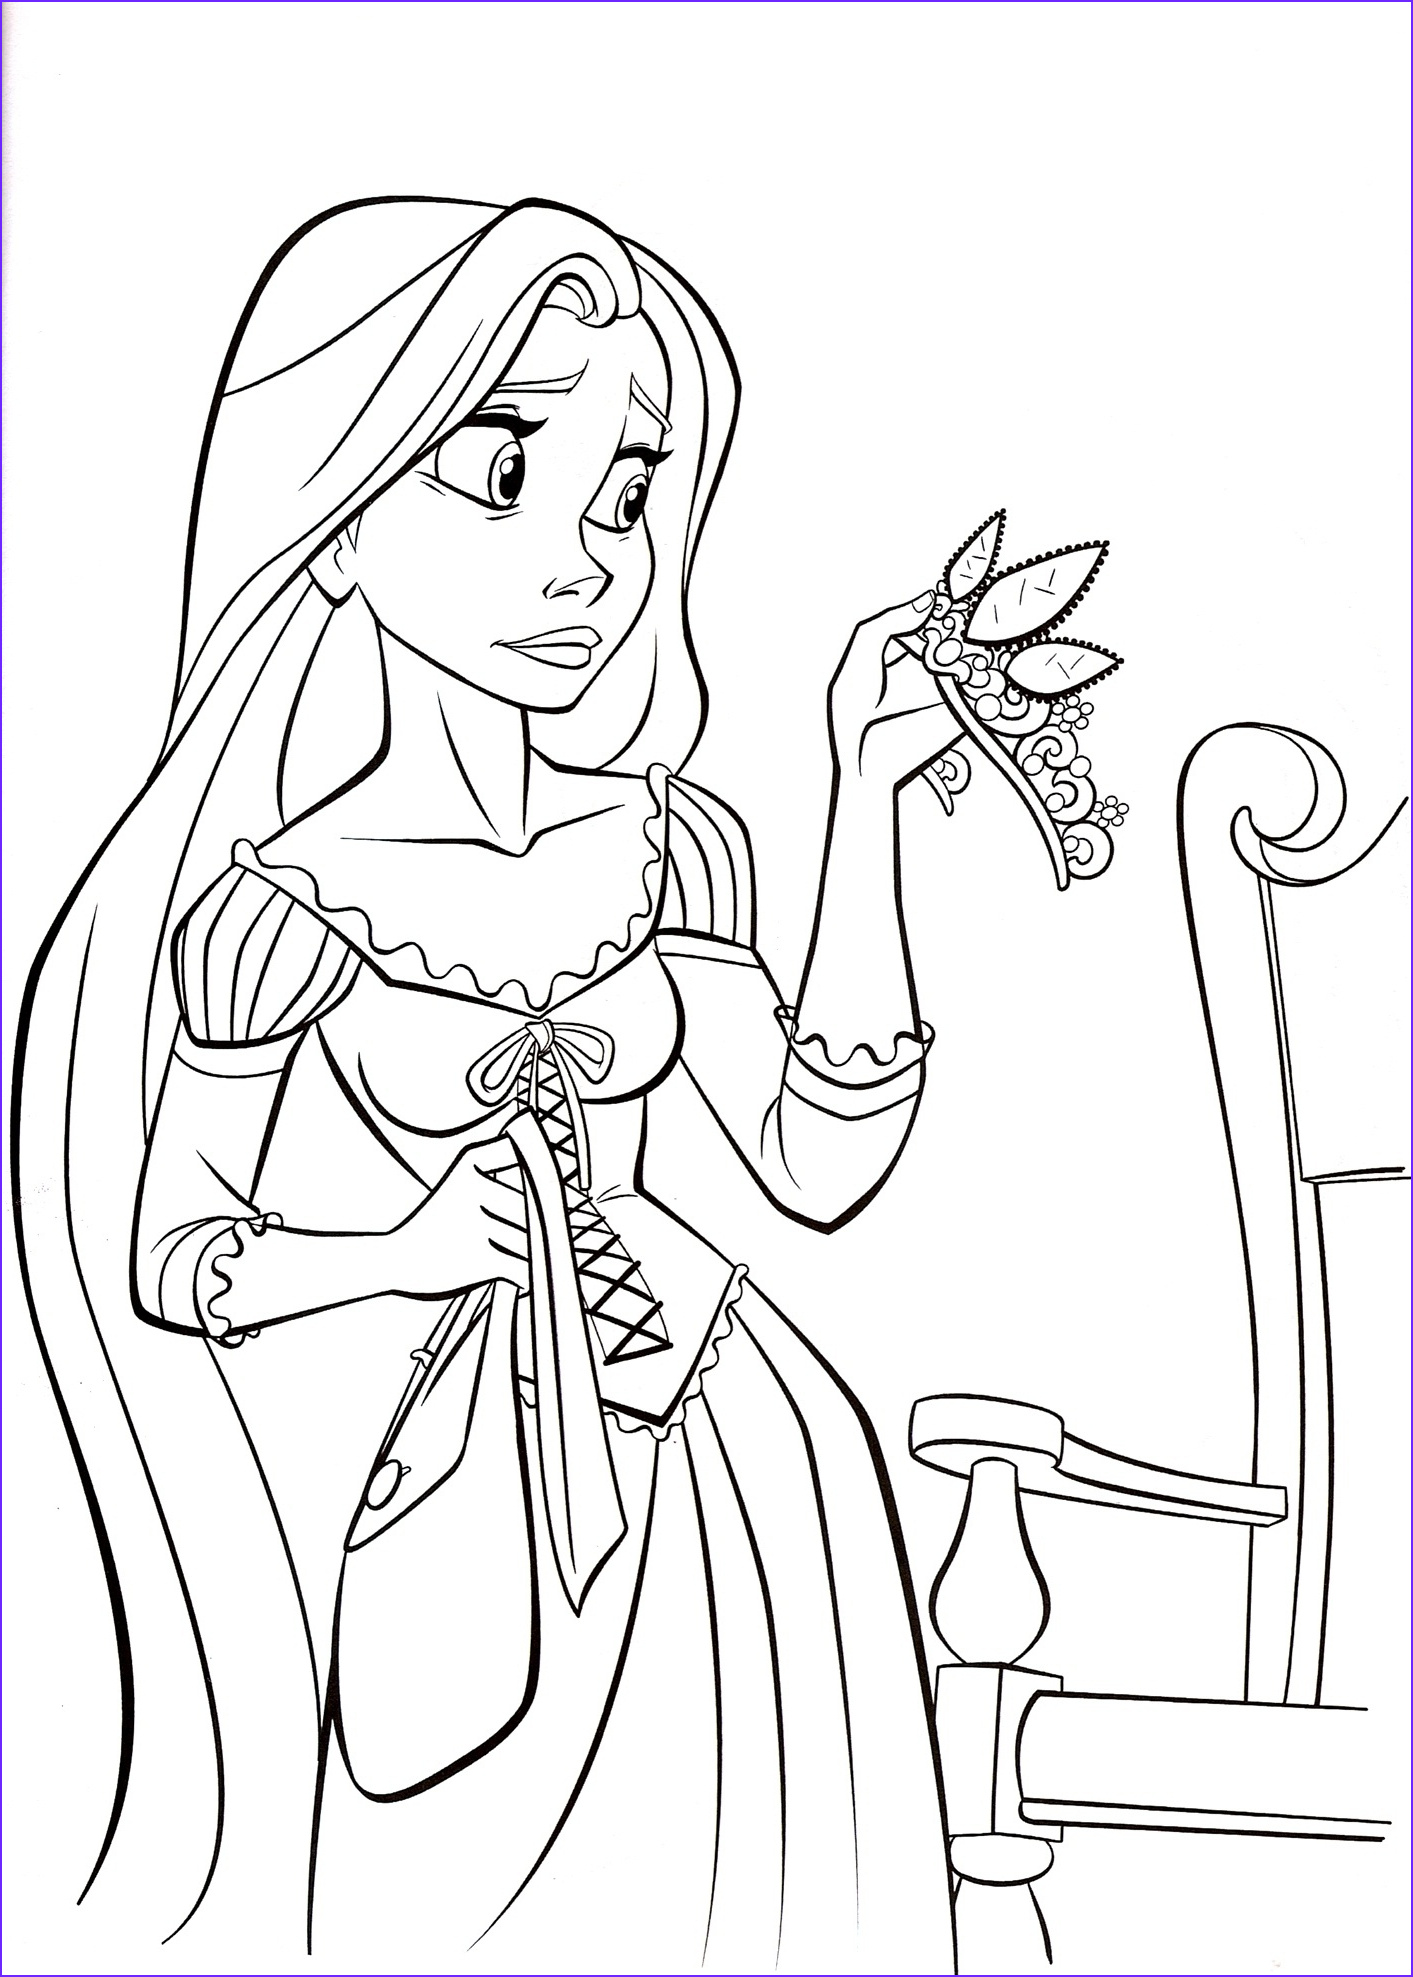 Free Printable Kids Coloring Pages Luxury Gallery Free Printable Tangled Coloring Pages for Kids